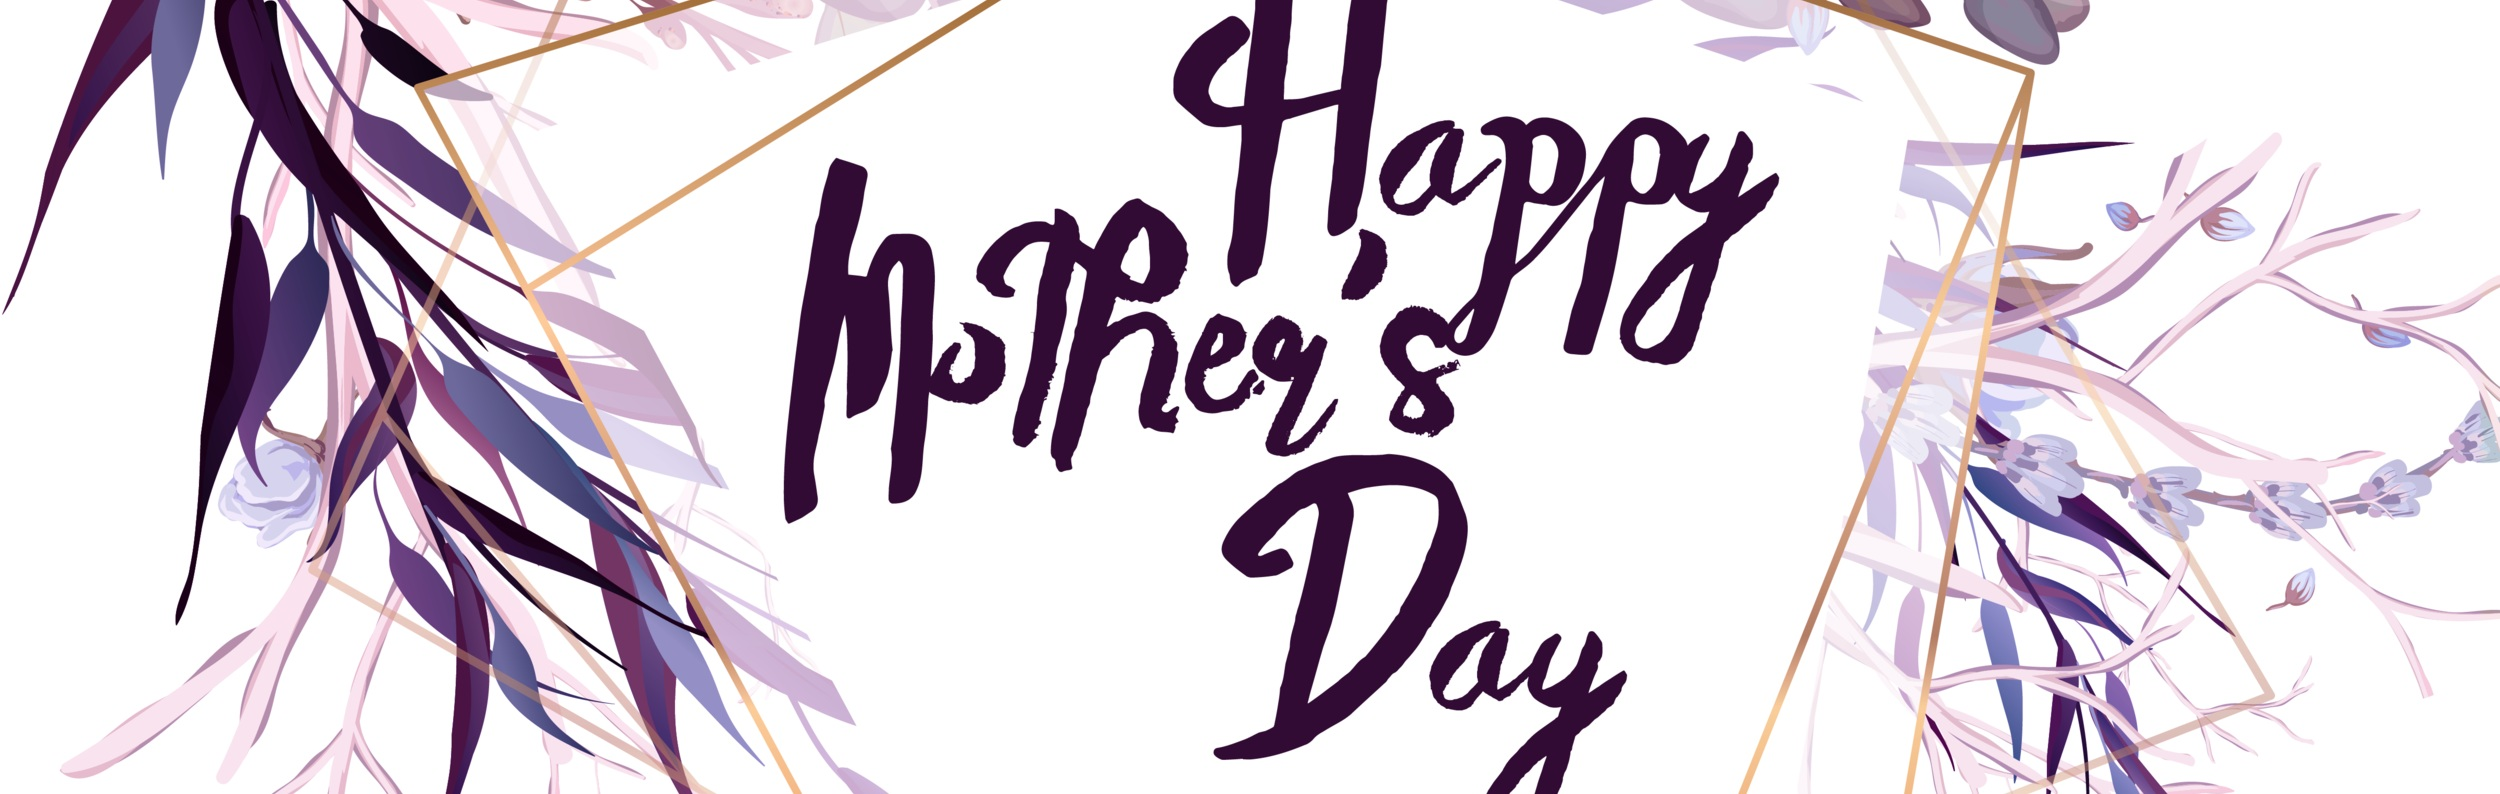 Mothers Day Header.jpg